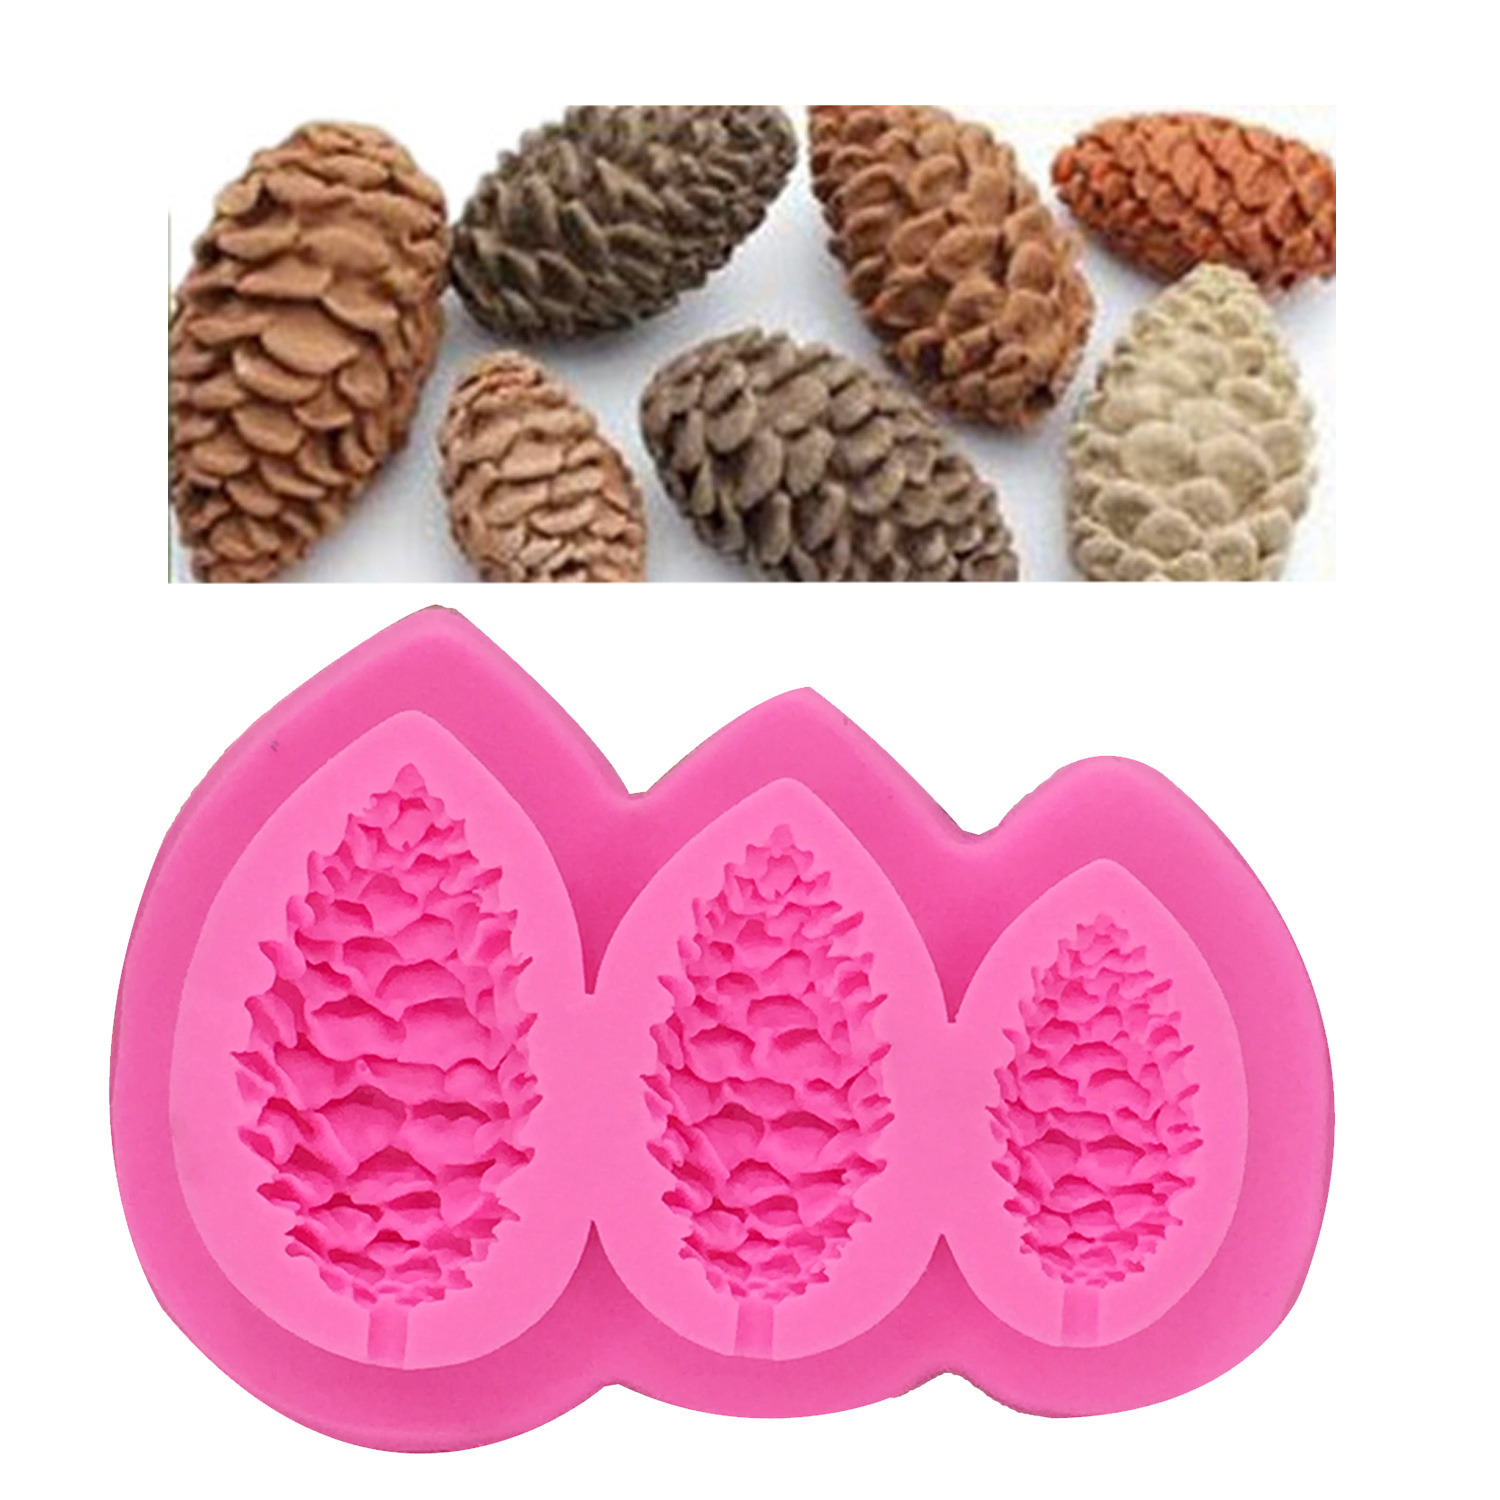 Sugarcraft Pine cones Silicone mold fondant mold Pine nuts Christmas ...